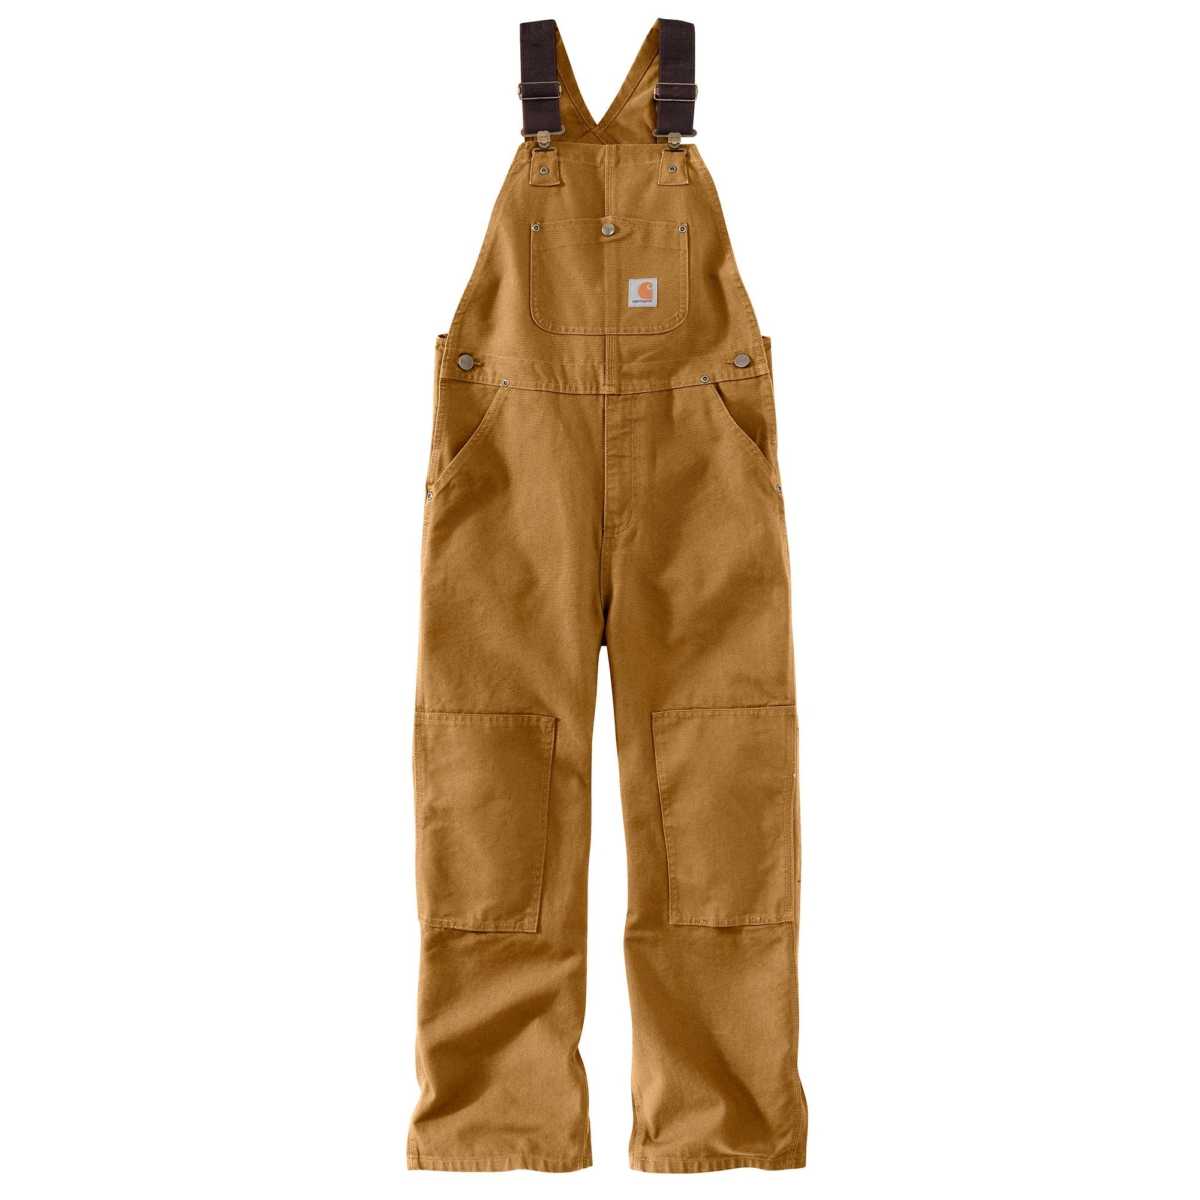 Carhartt Duck Washed Bib Overall Sizes 8-16 Carhartt Brown USA - GOOFASH - Mens TROUSERS